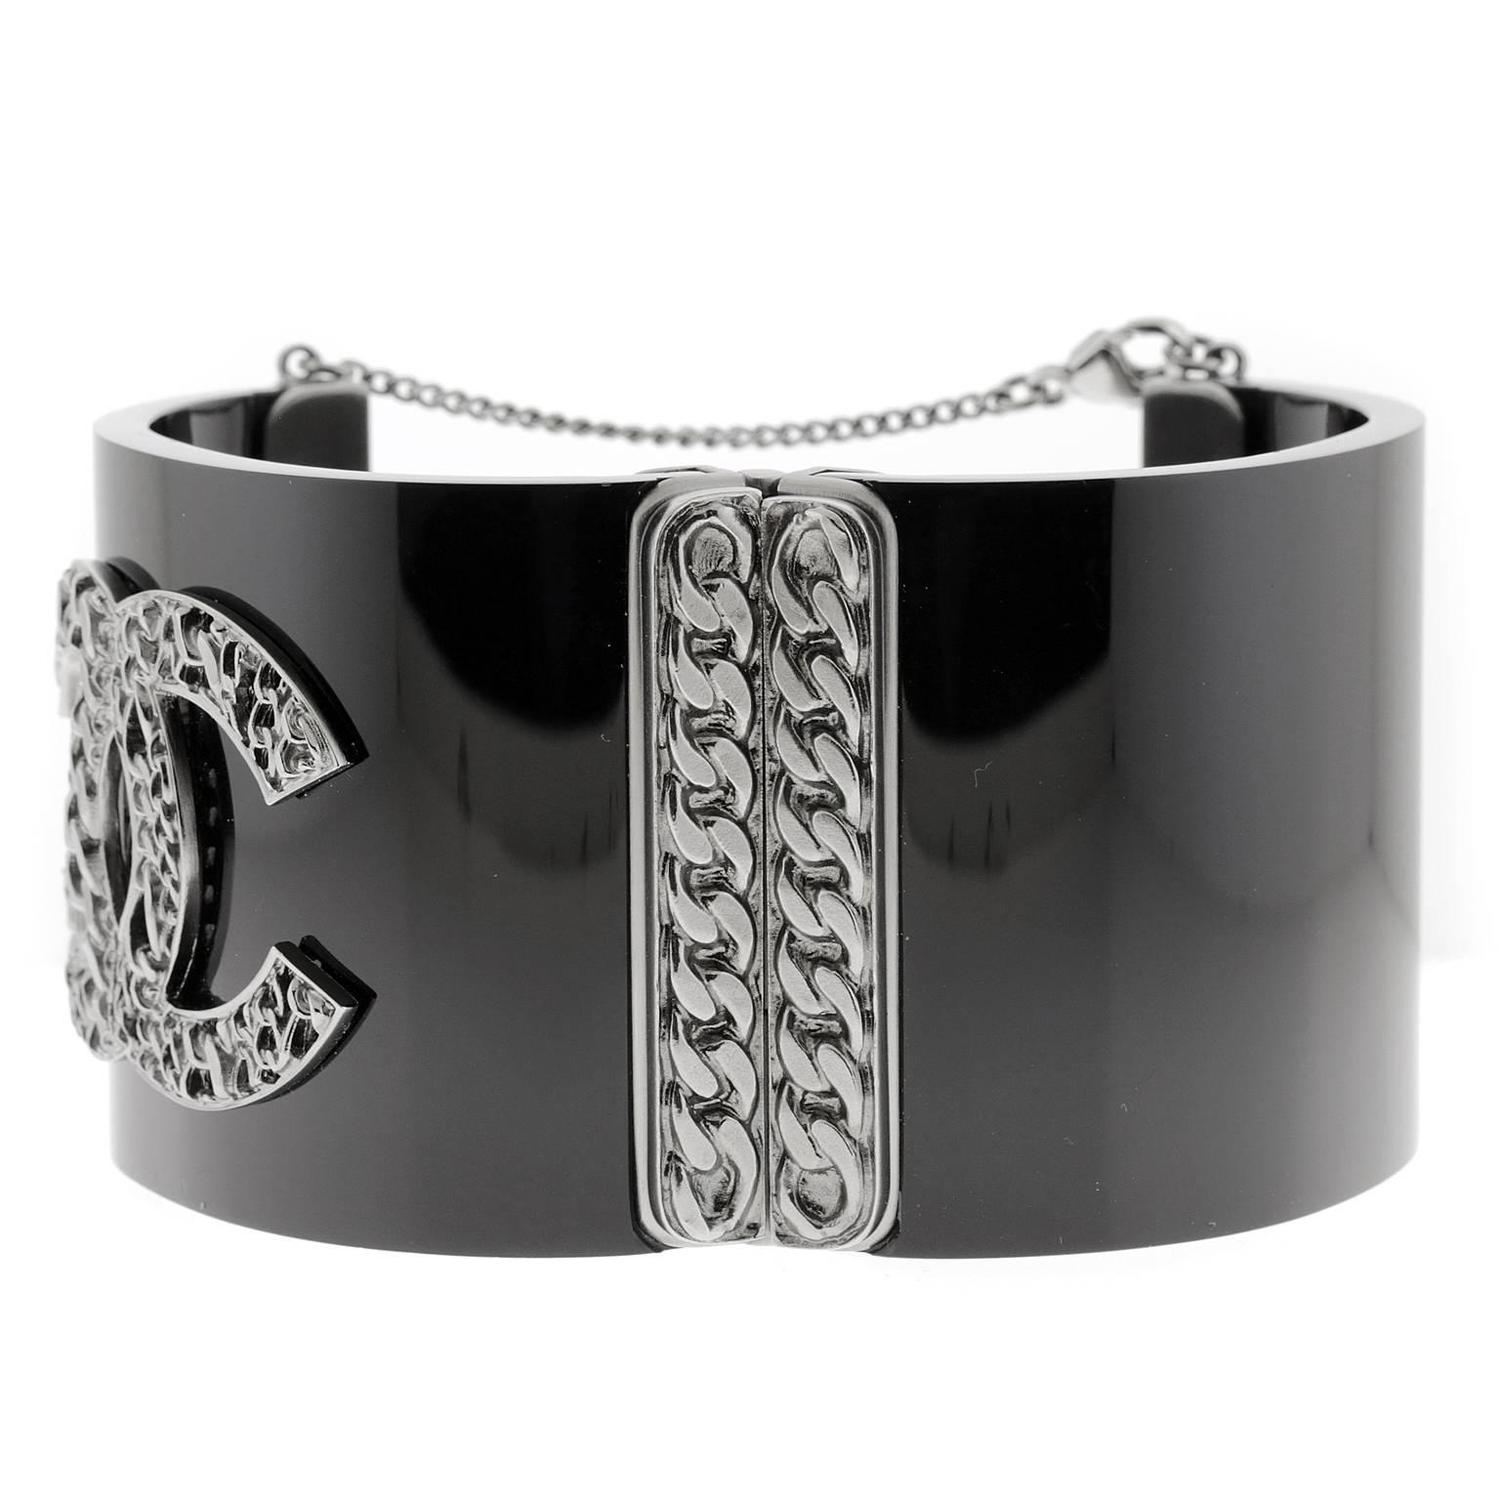 Chanel Black Resin Hinged Cuff Bracelet At 1stdibs